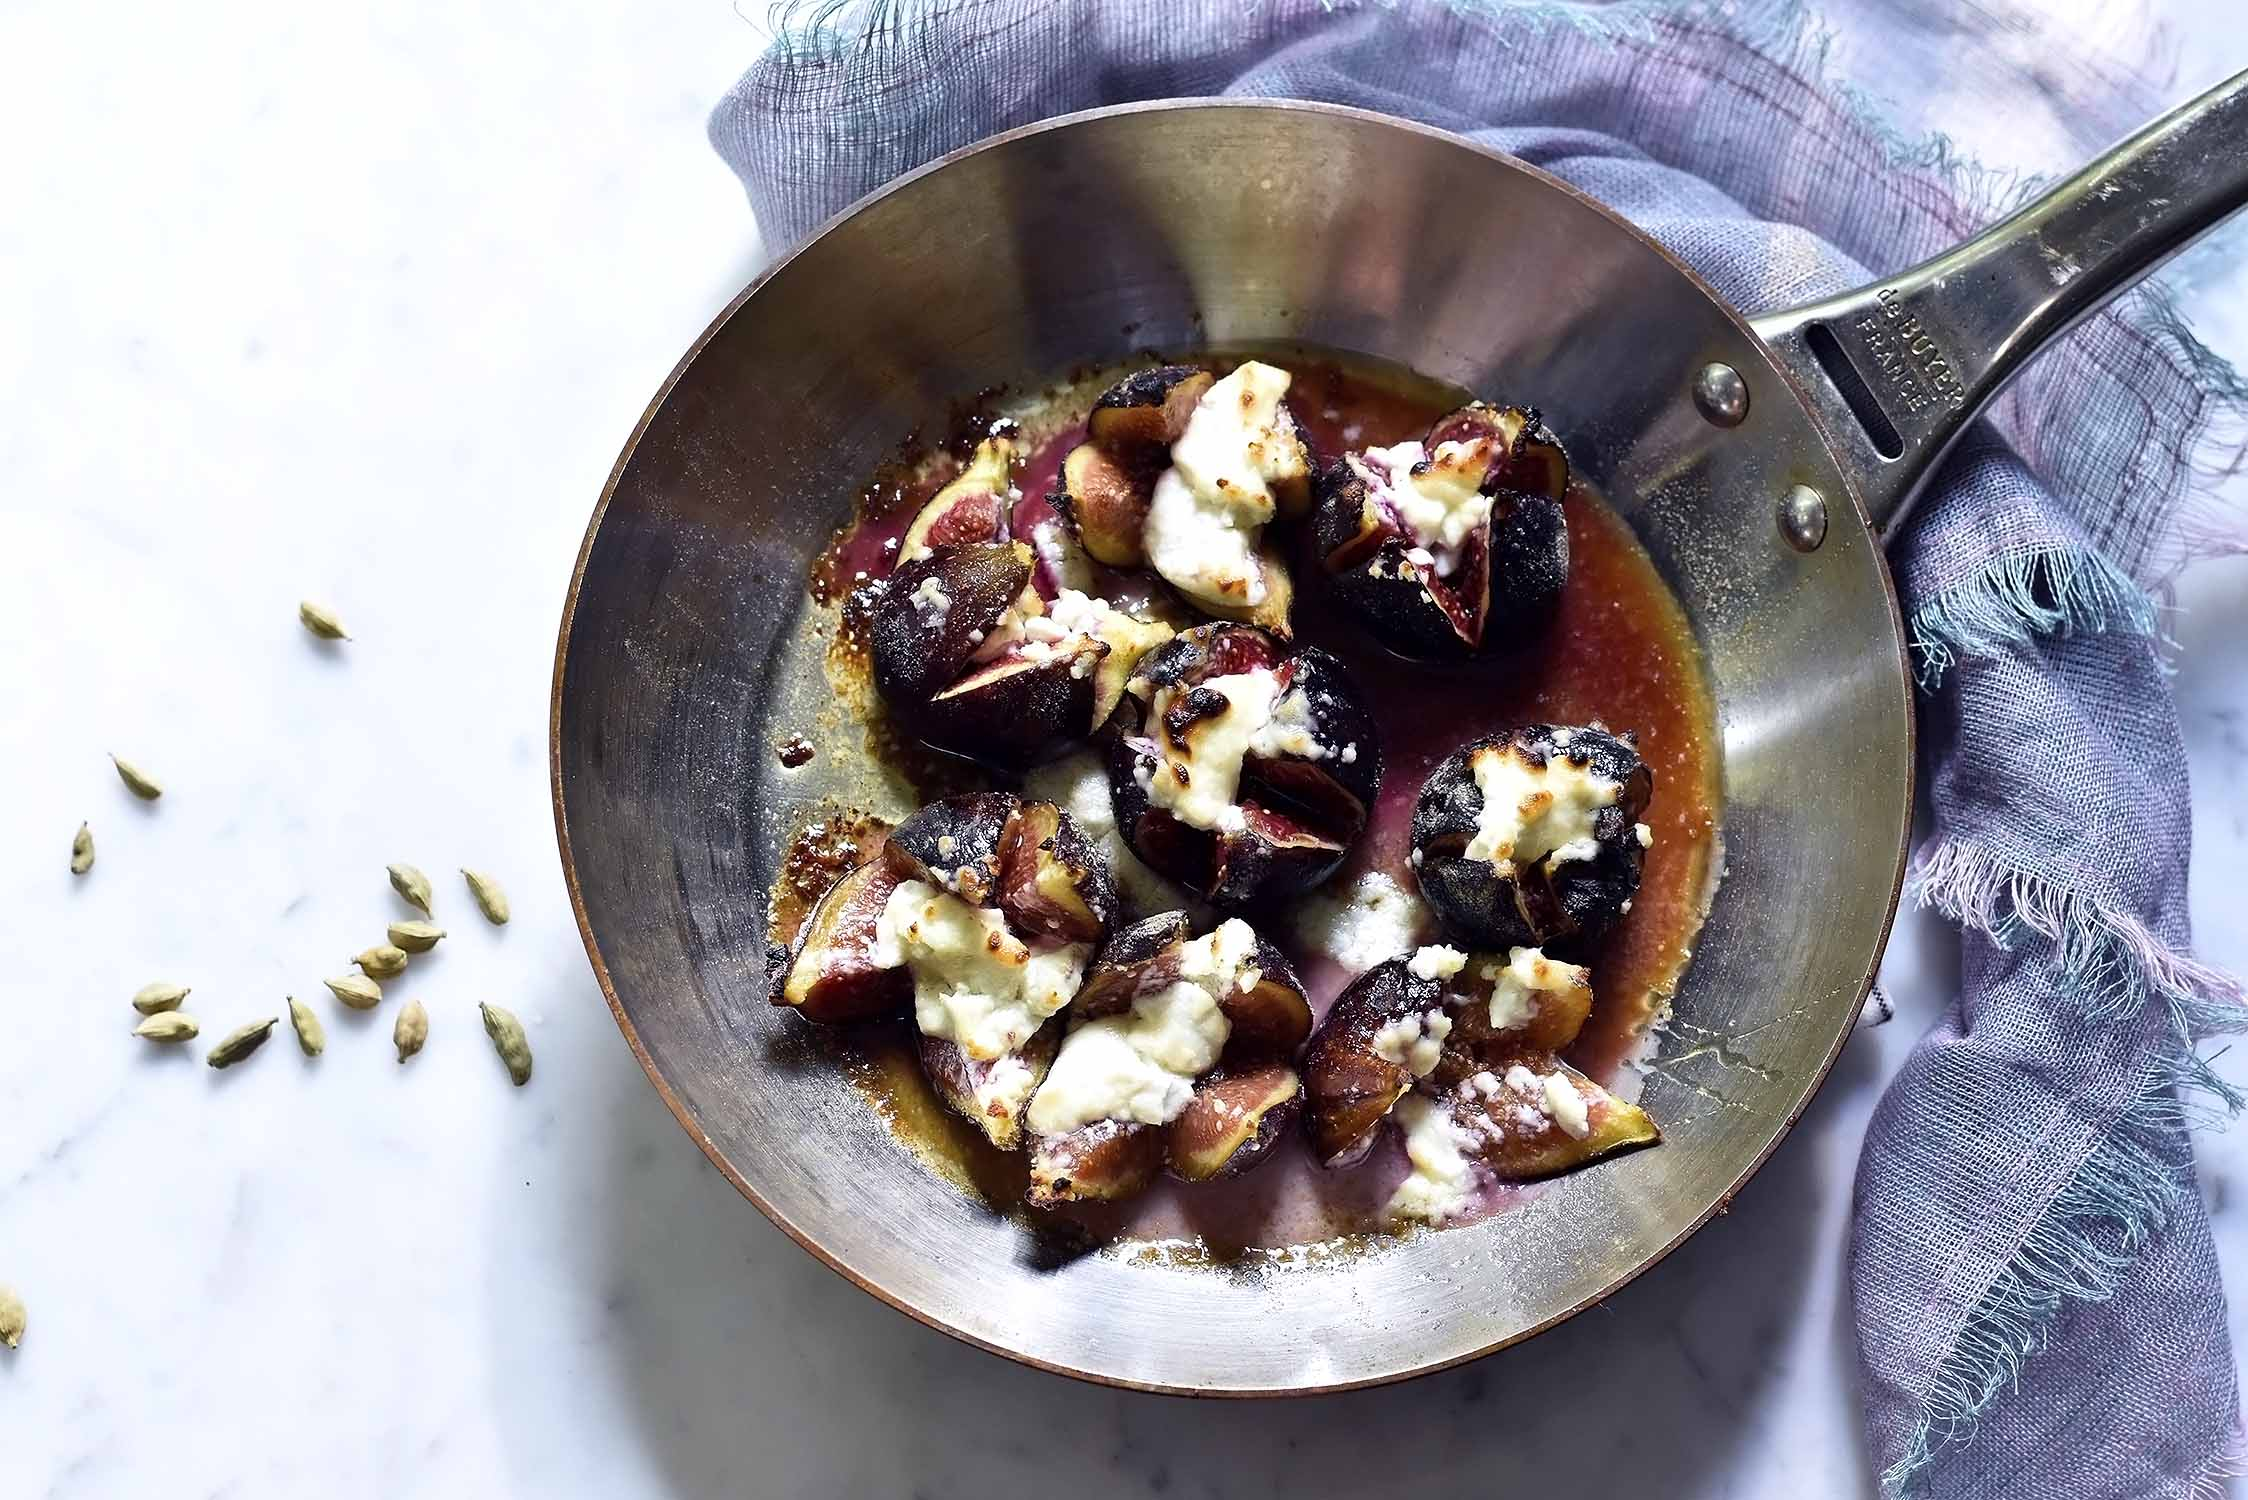 My Cardamom roasted figs with goatcheese